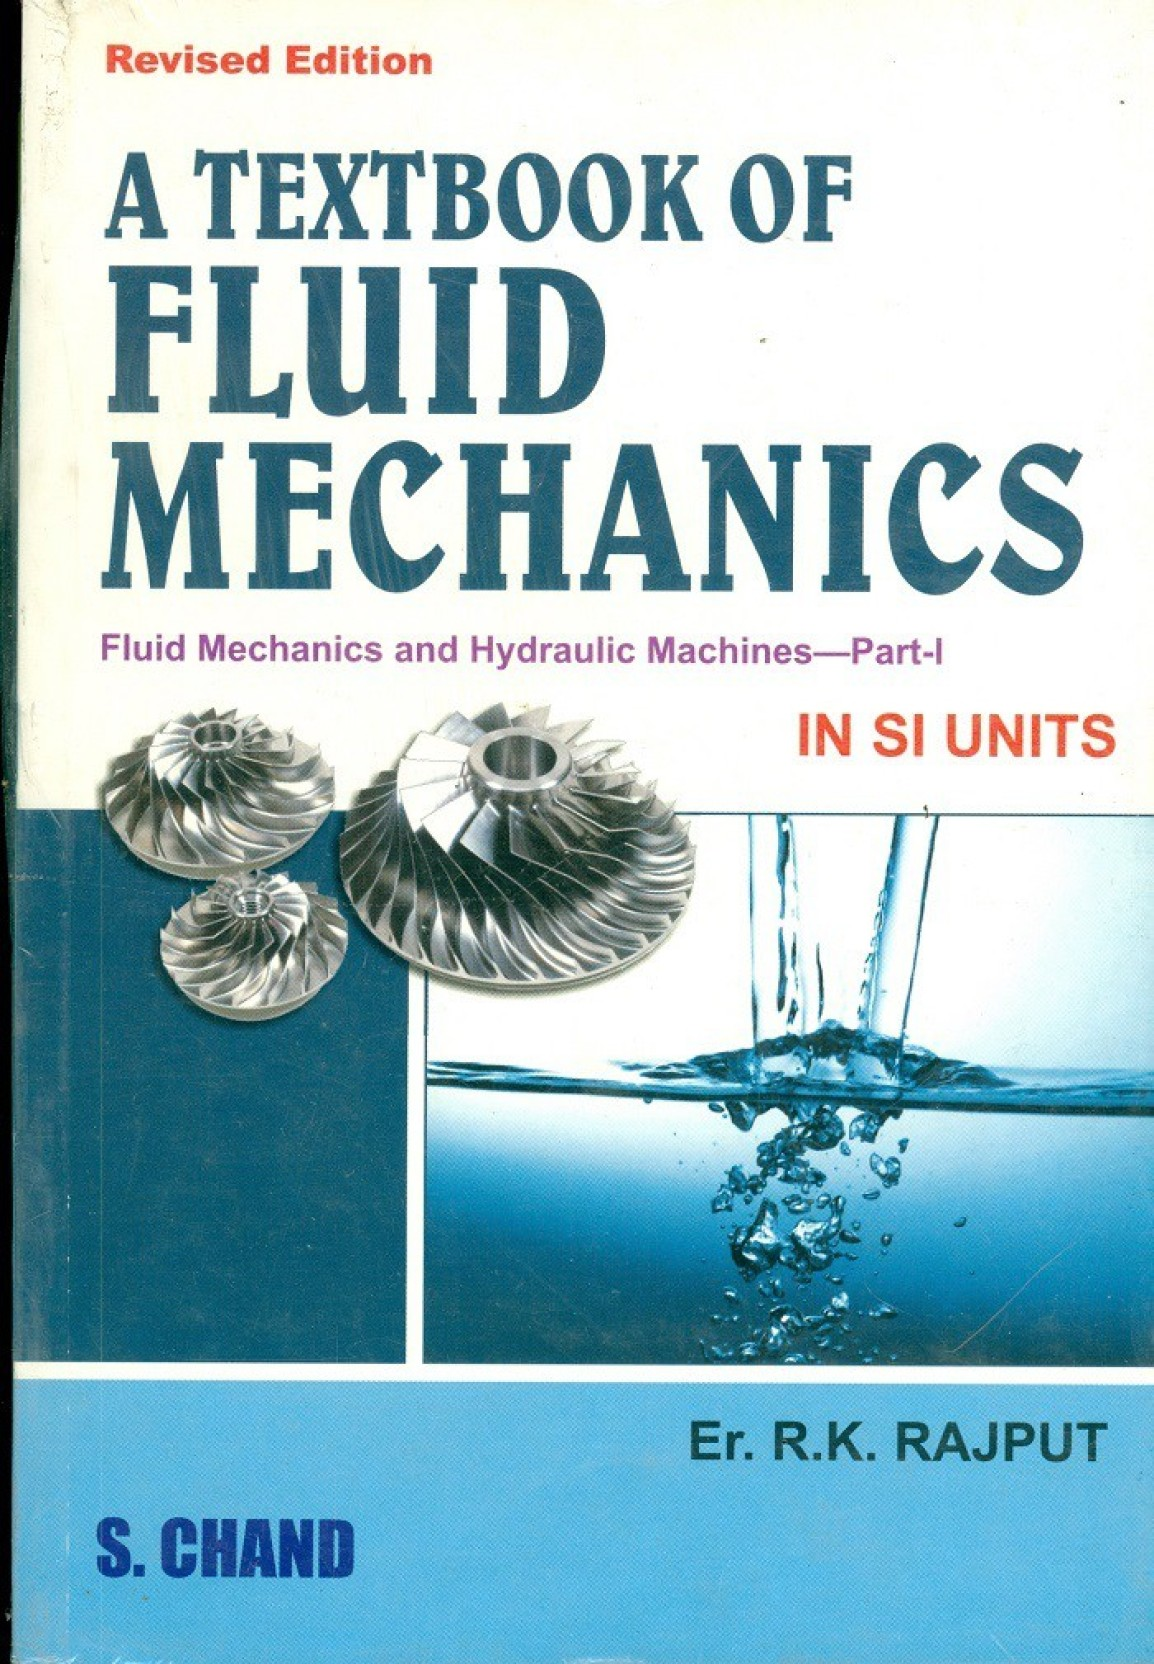 ... Fluid Mechanics In Si Units Revised Edition. Home